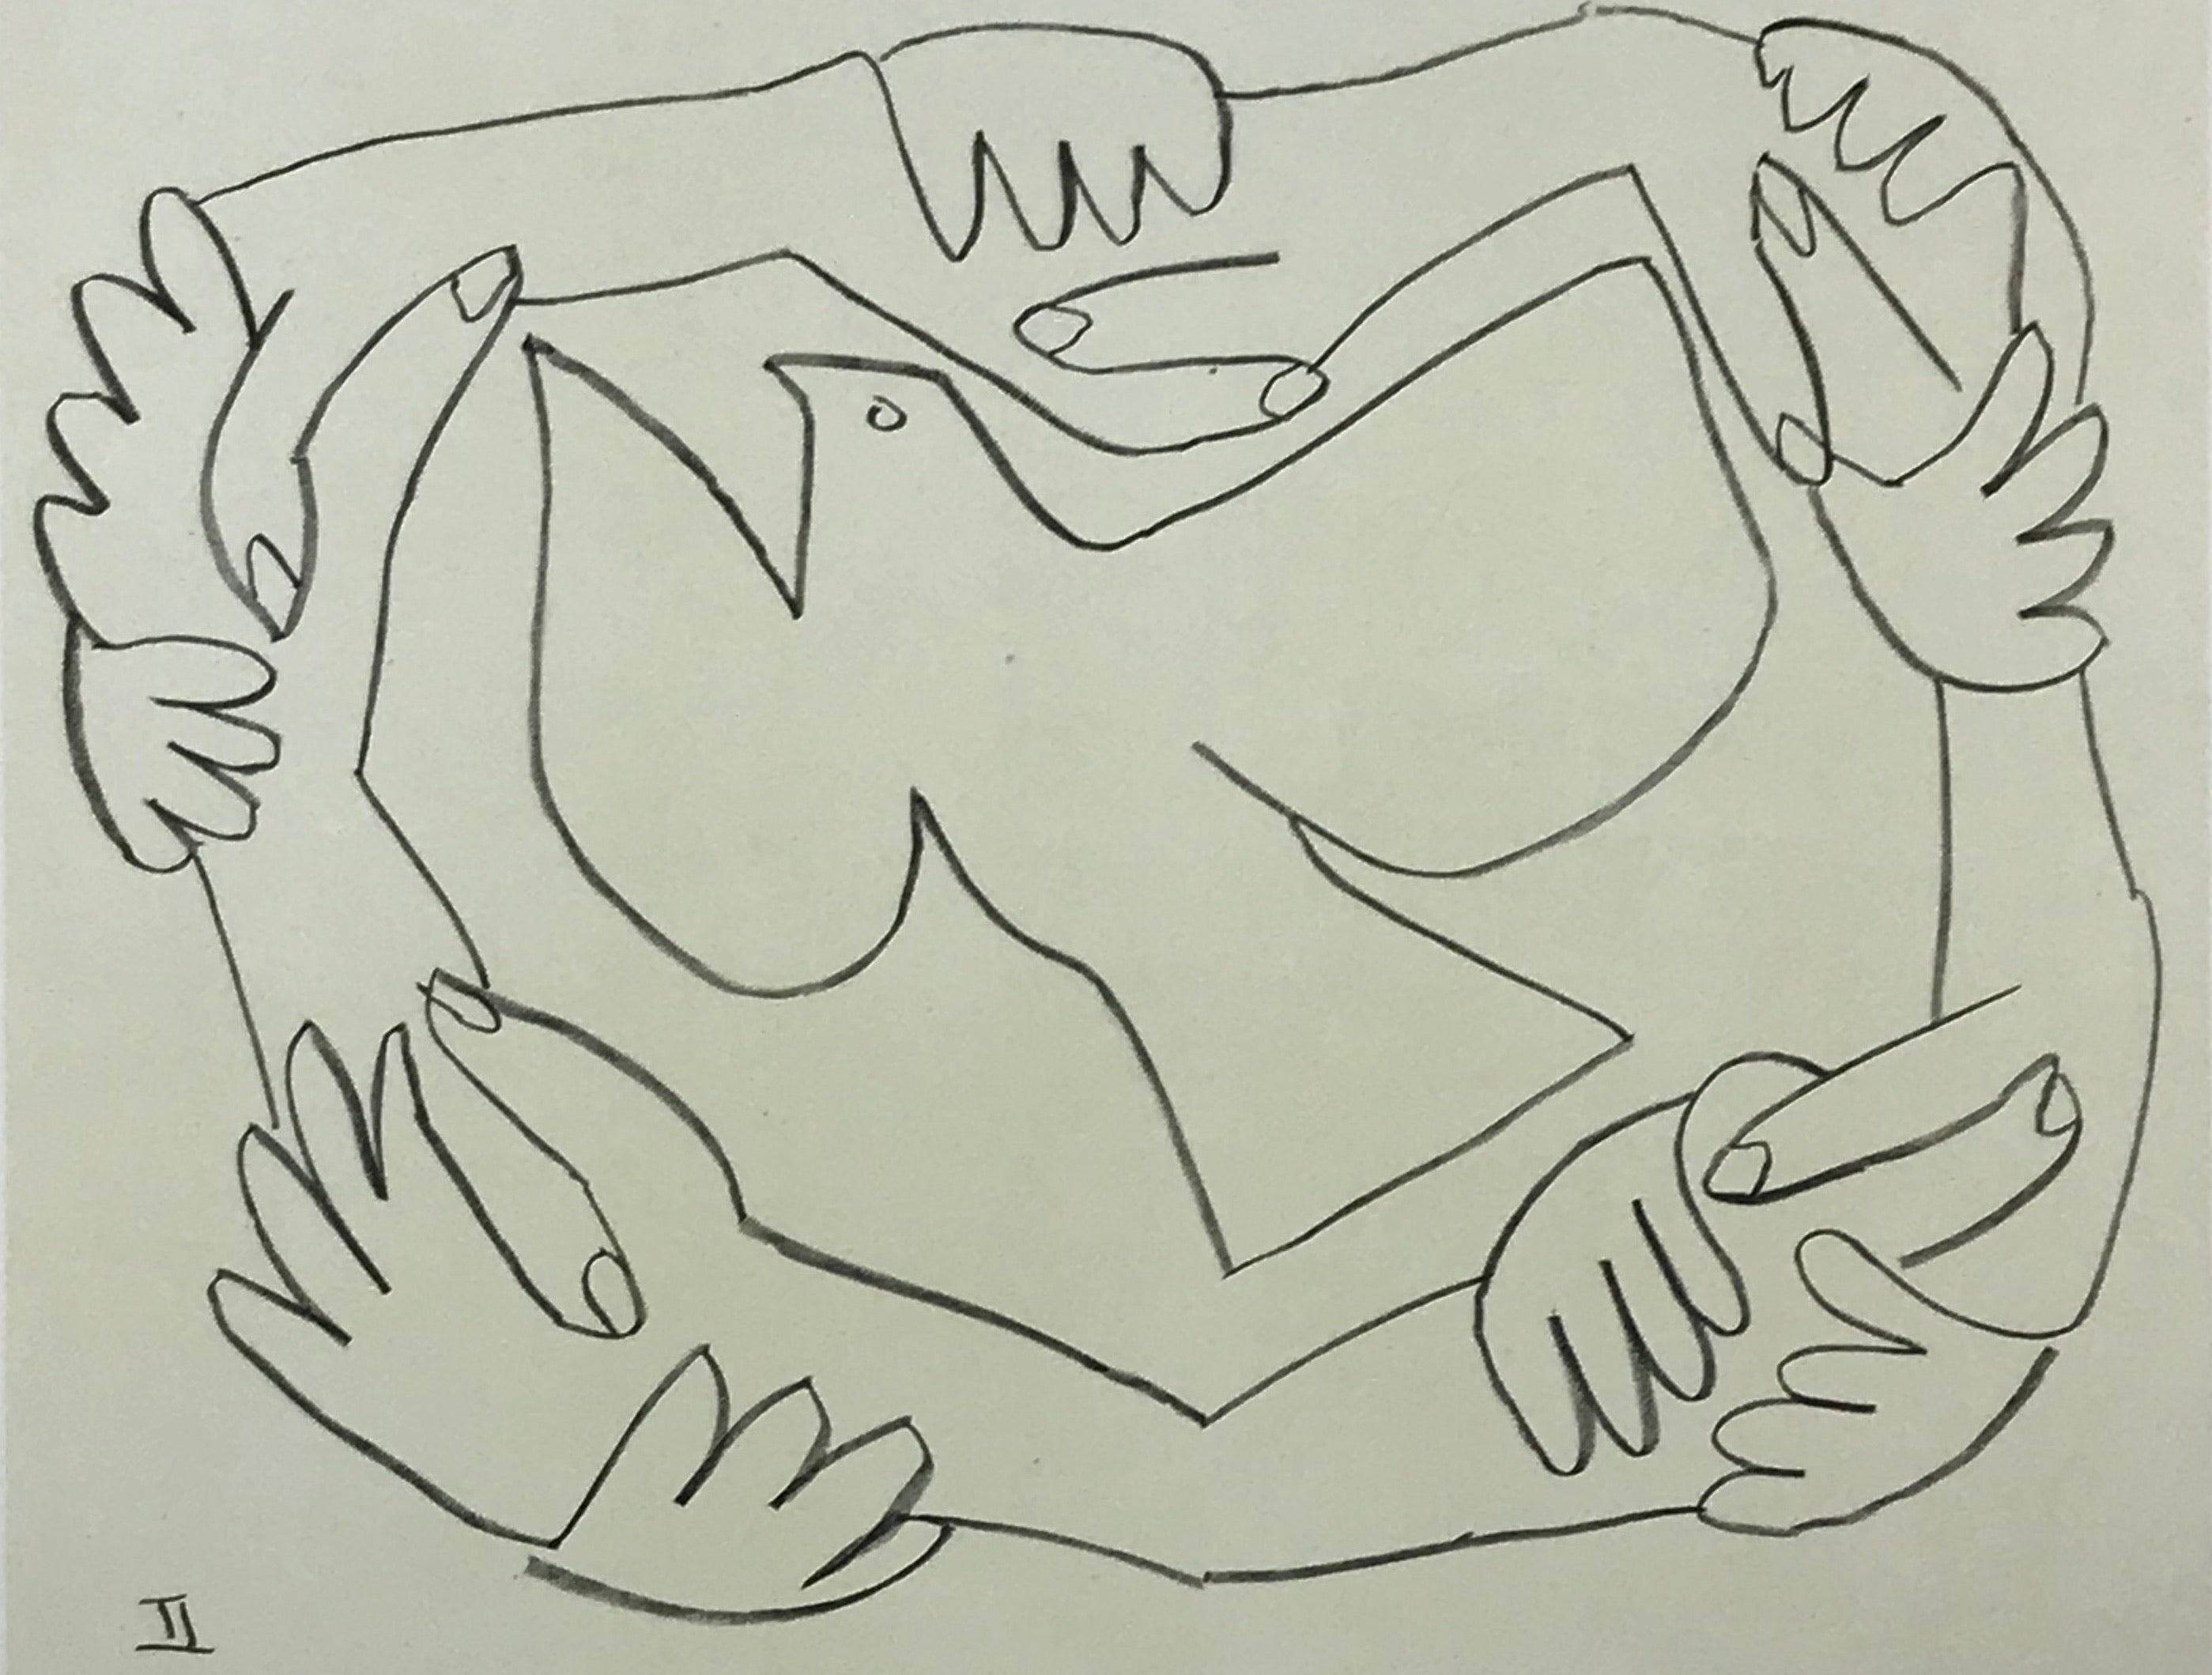 Valiant Dove/Hands Tied by Pablo Picasso